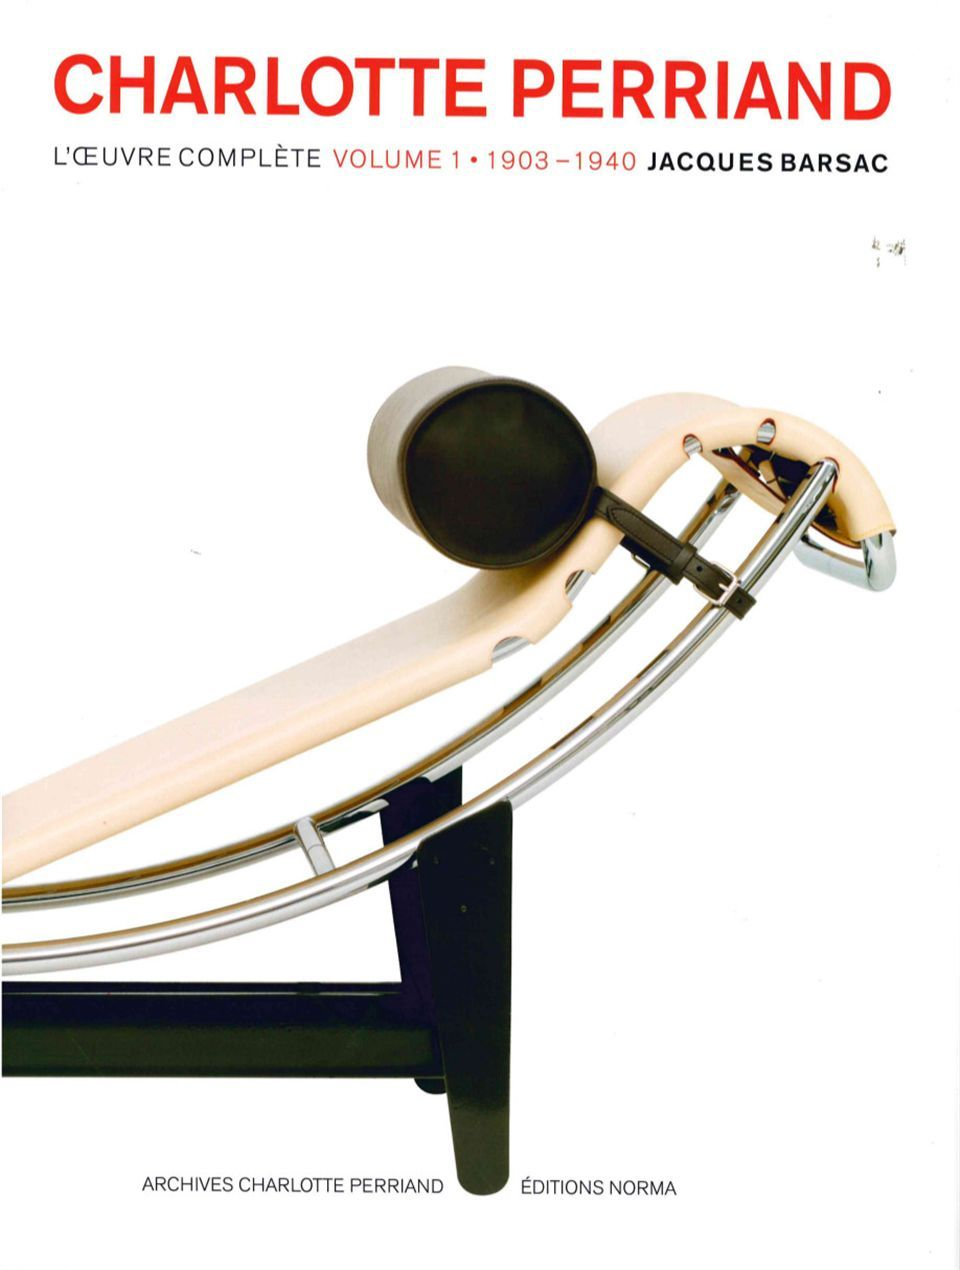 CHARLOTTE PERRIAND : VOLUME 1 - L'OEUVRE COMPLETE 1903-1940